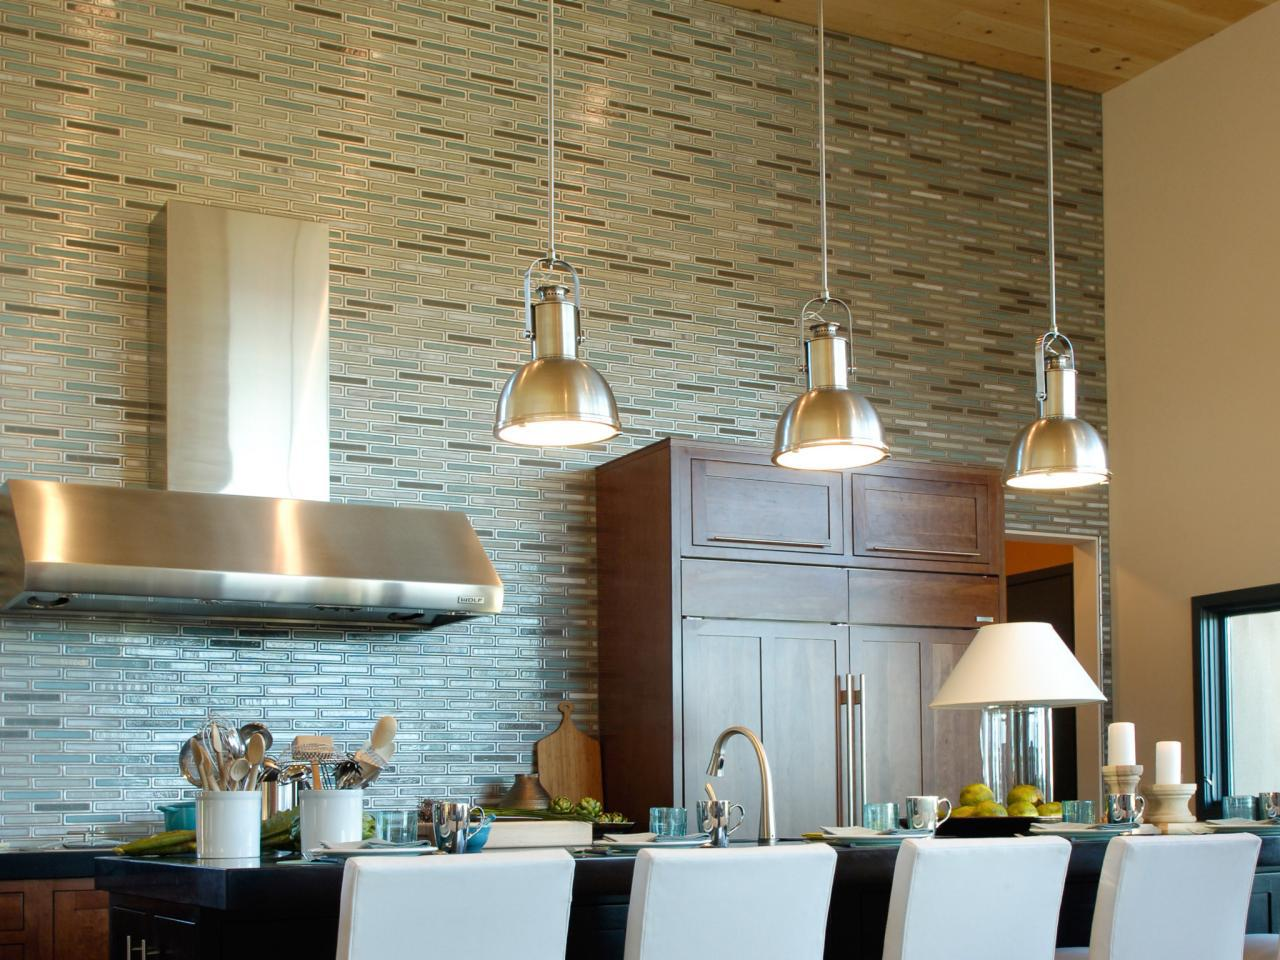 Image of: kitchen backsplash ideas modern